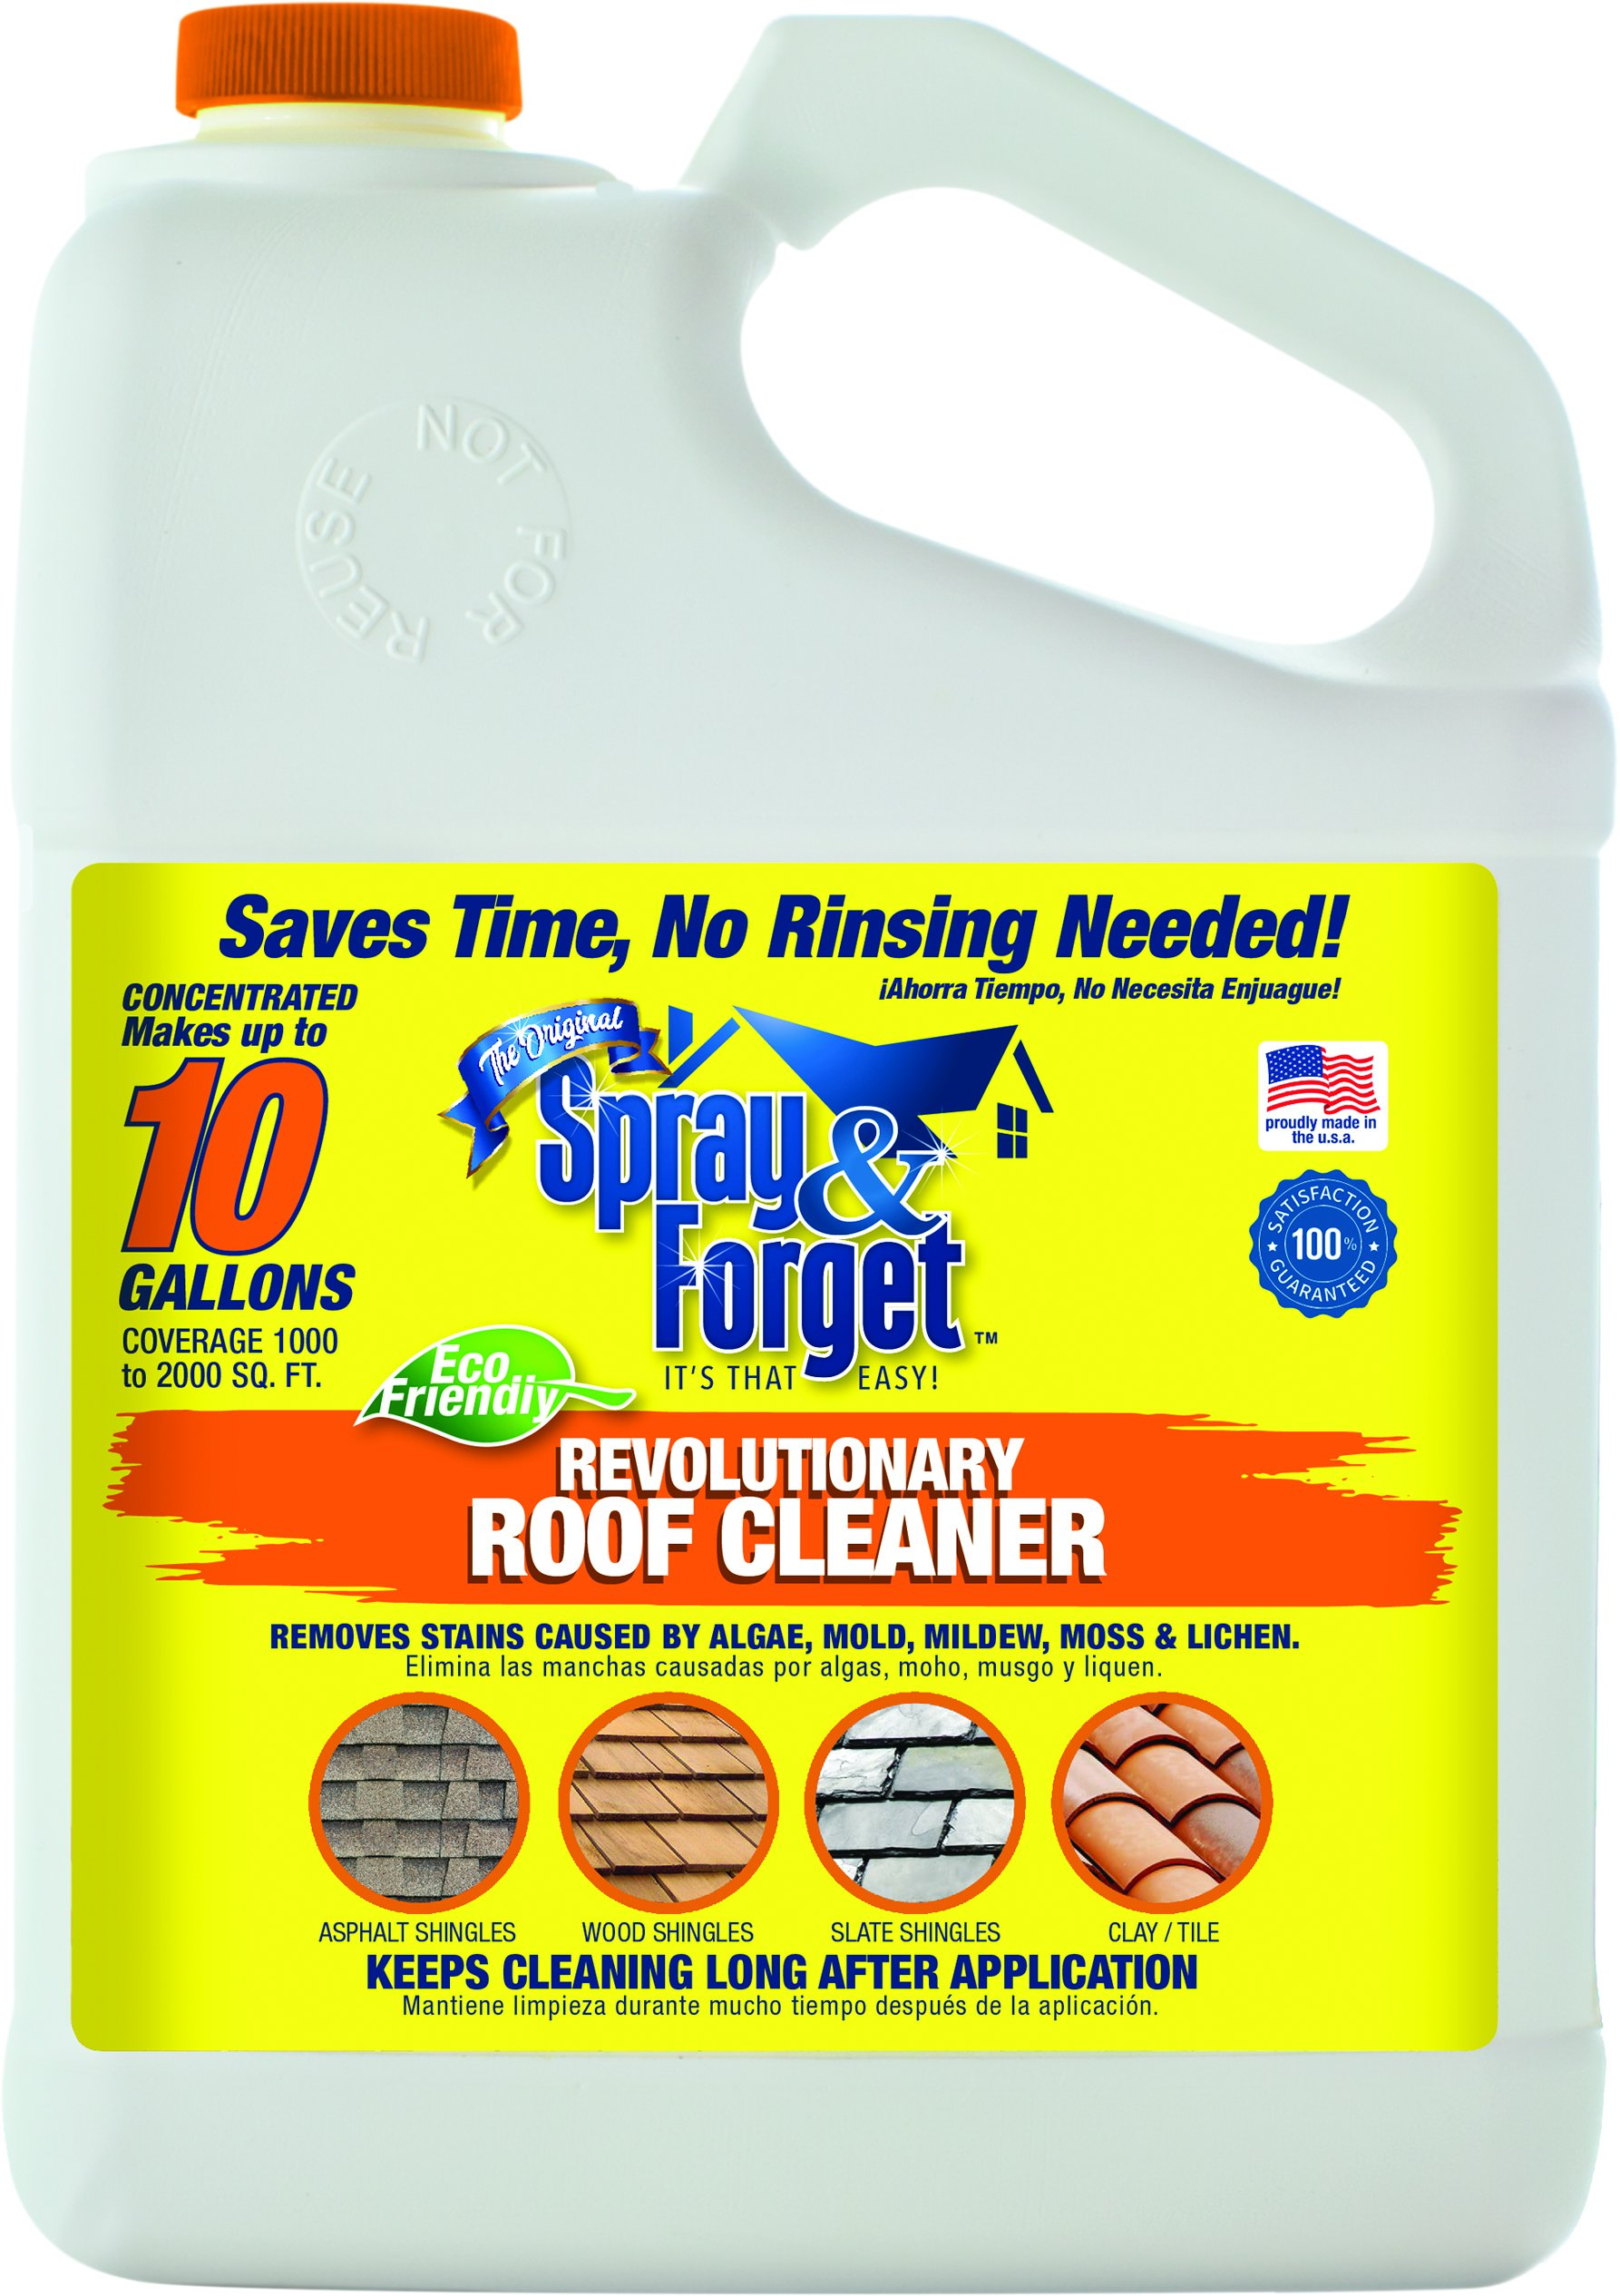 Spray & Forget Revolutionary Roof Cleaner Concentrate, 1 Gallon Bottle, 2 Count, Outdoor Cleaner, Mold Remover, Mildew Remover by Spray & Forget